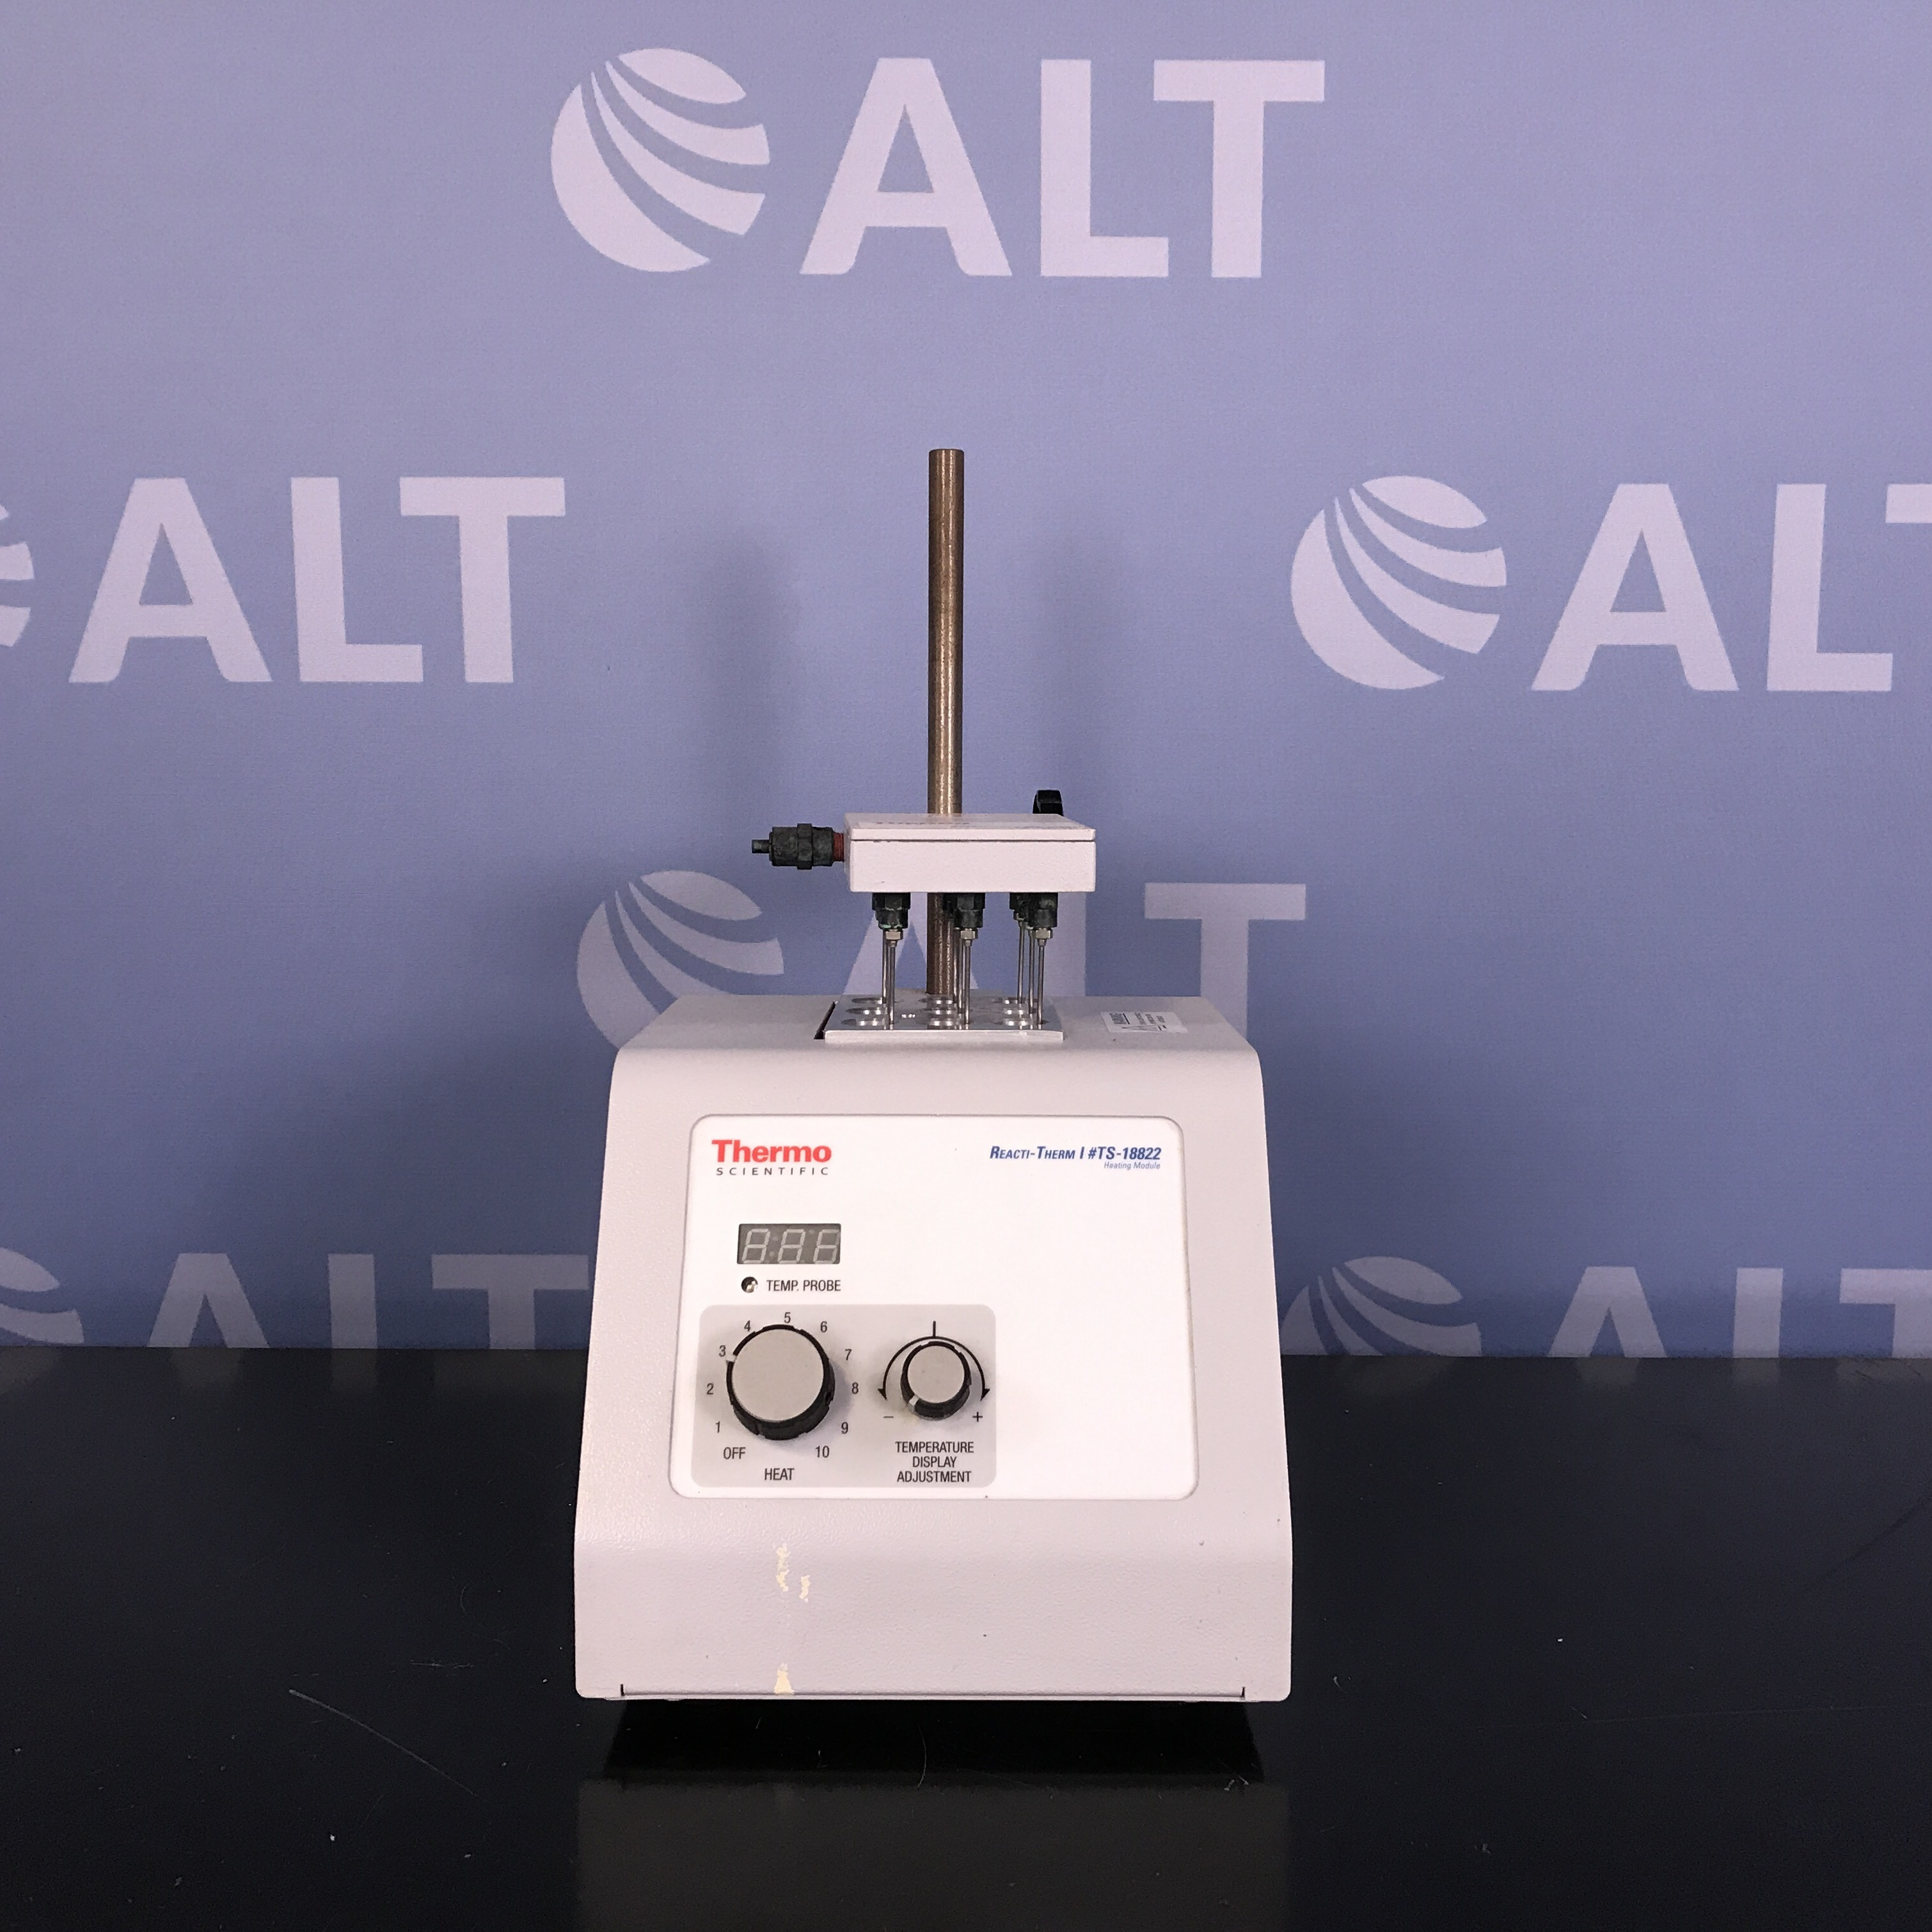 Thermo Scientific REACTI-THERM I #TS-18822 Heating Module Image